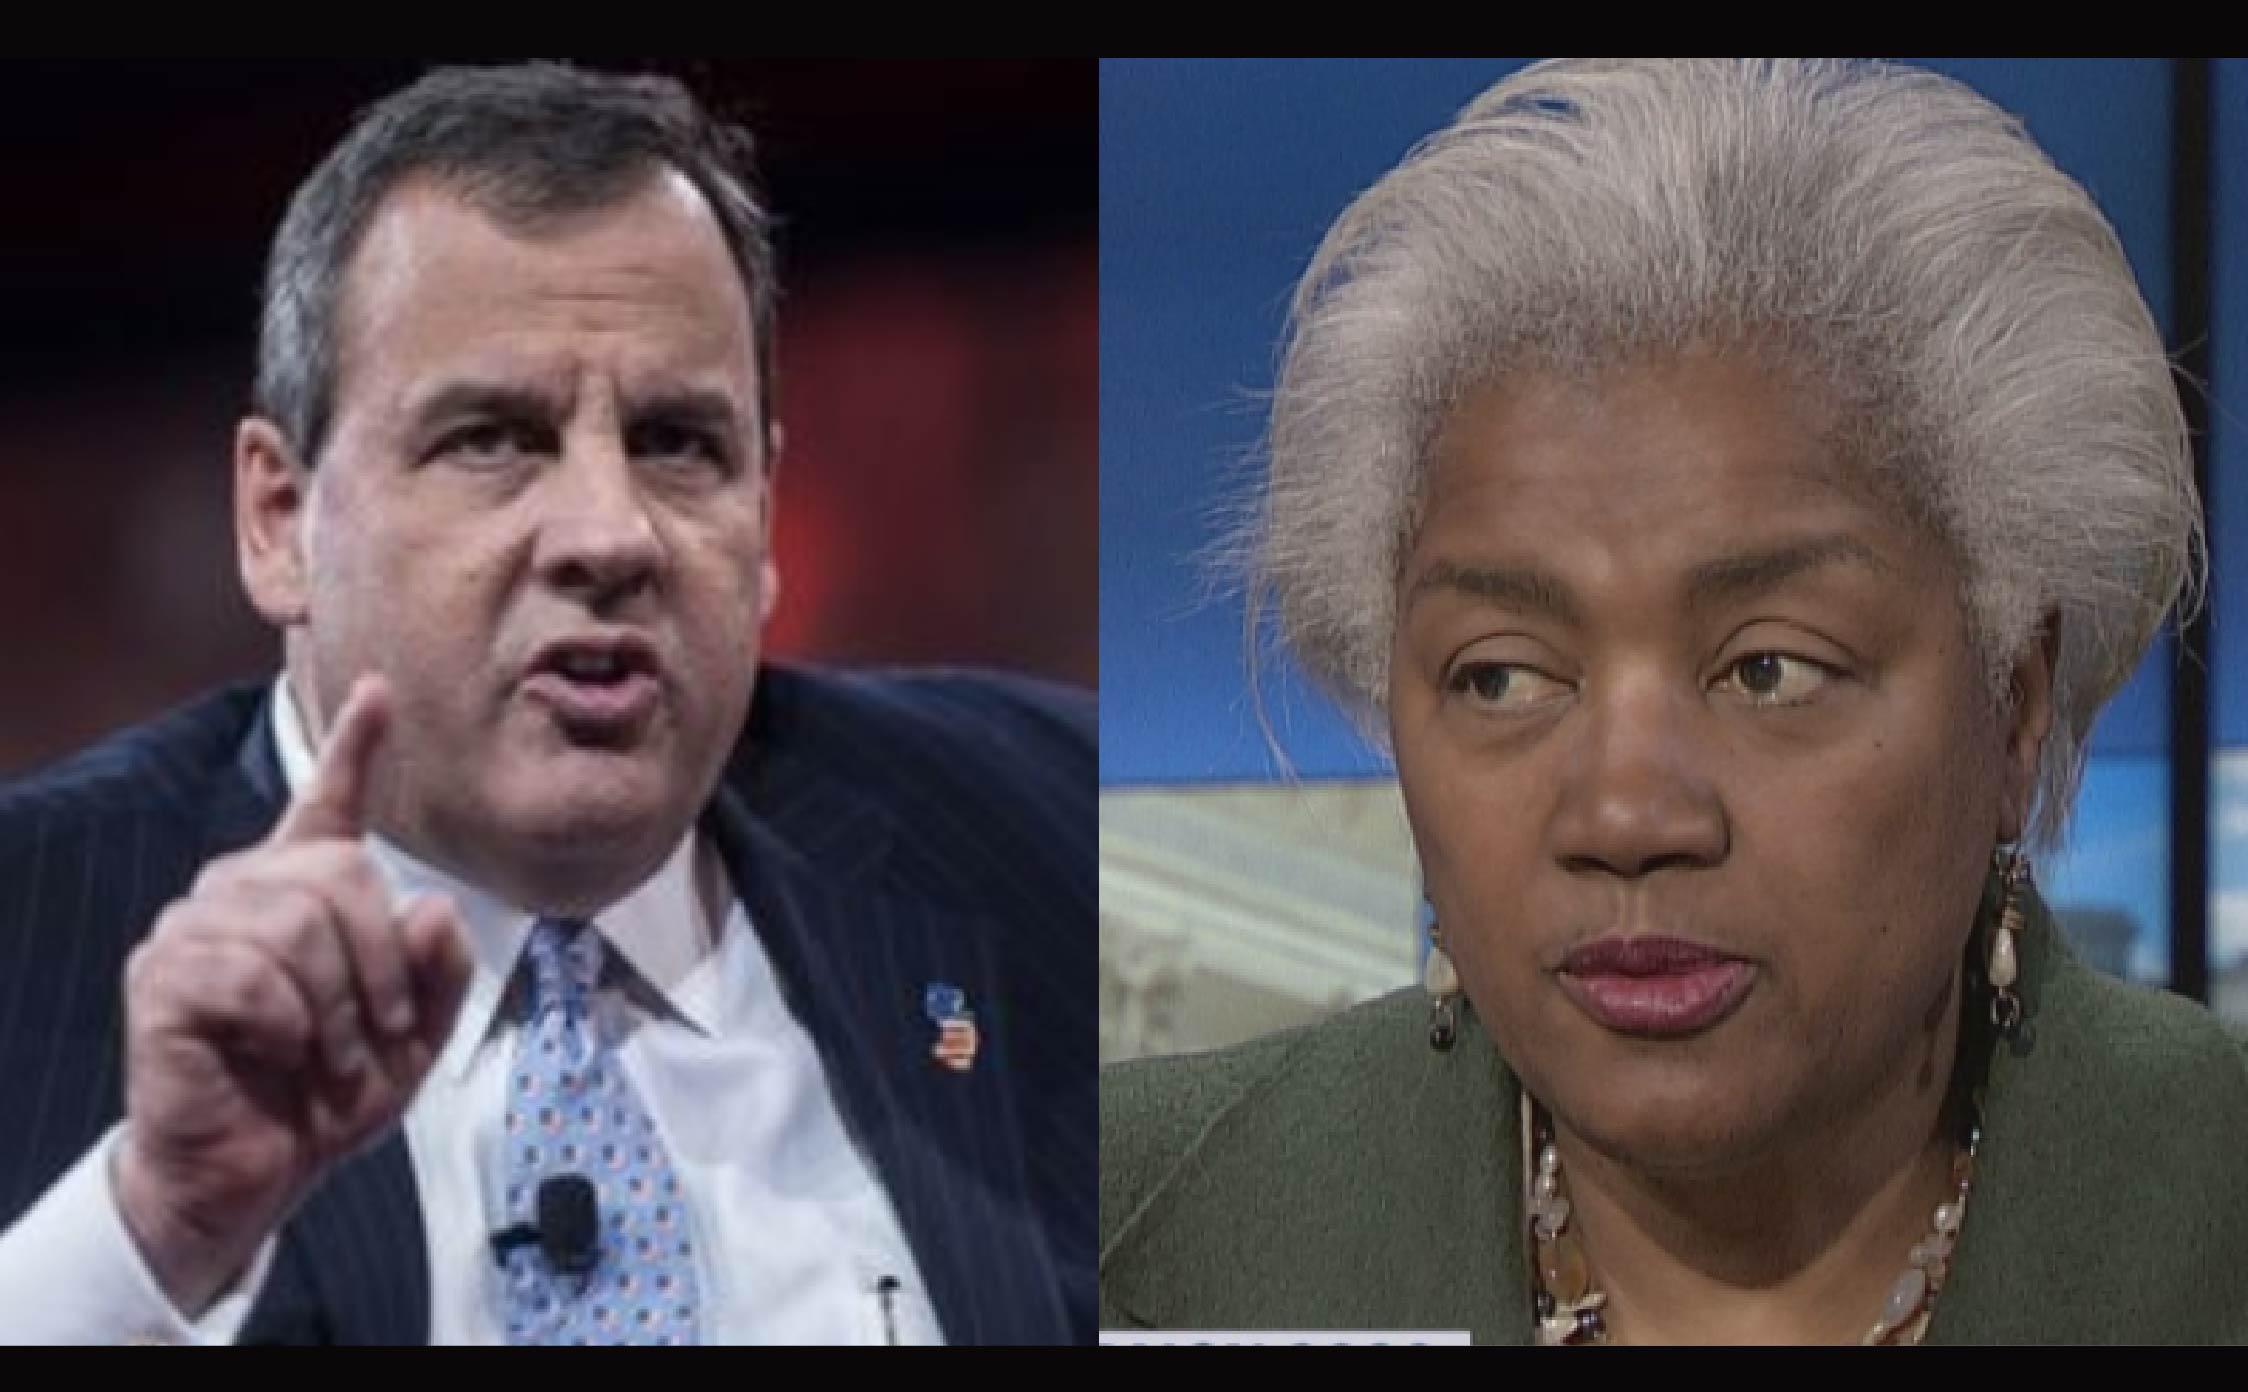 [VIDEO] Bet Donna Brazile Wishes She Was Back on Fox News, After Chris Christie Humiliates Her on ABC